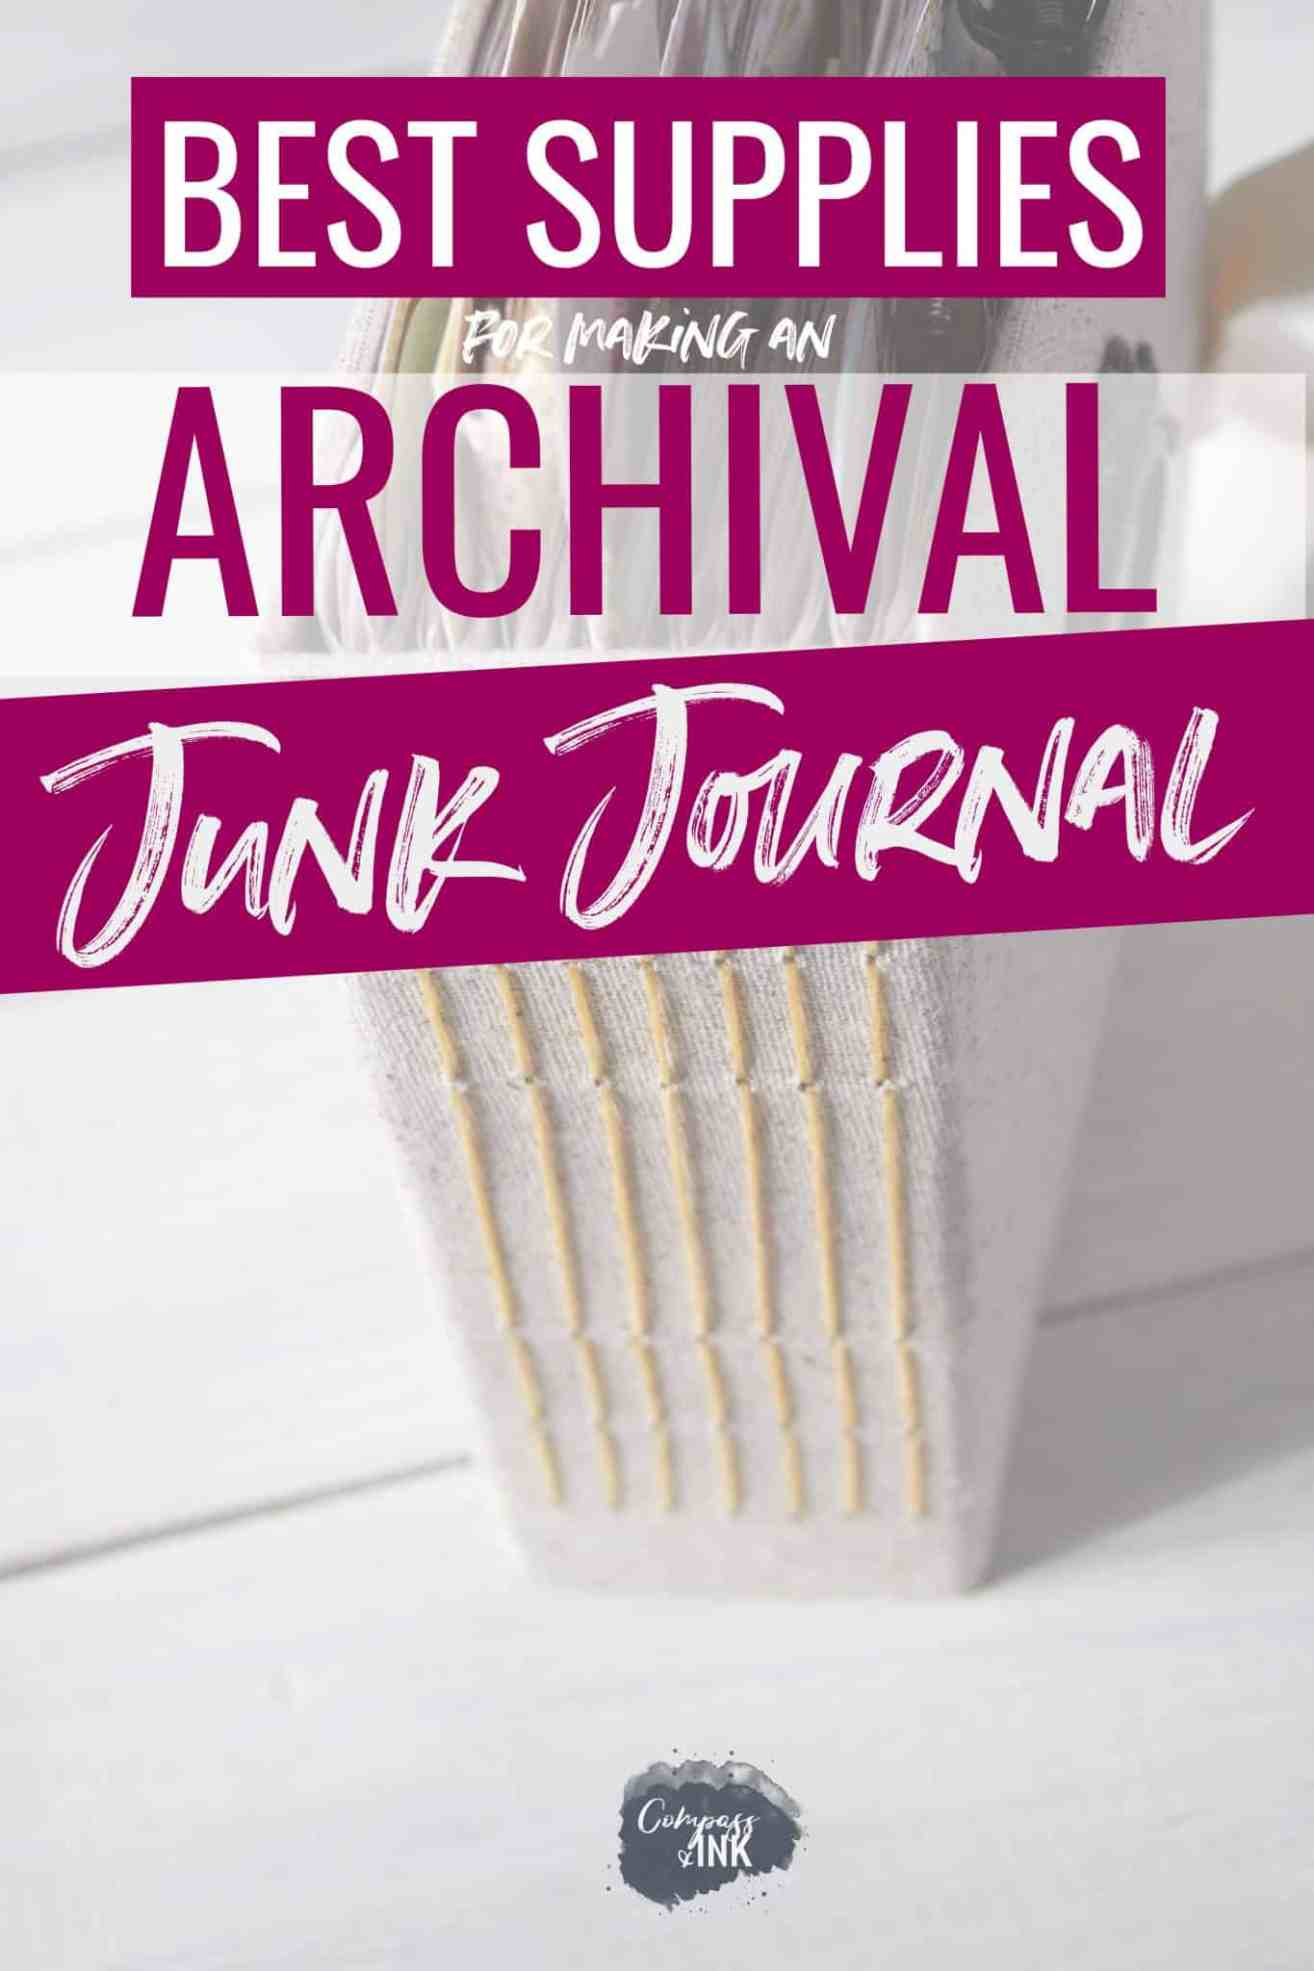 Best Supplies for Archival Journal Making - Compass and Ink